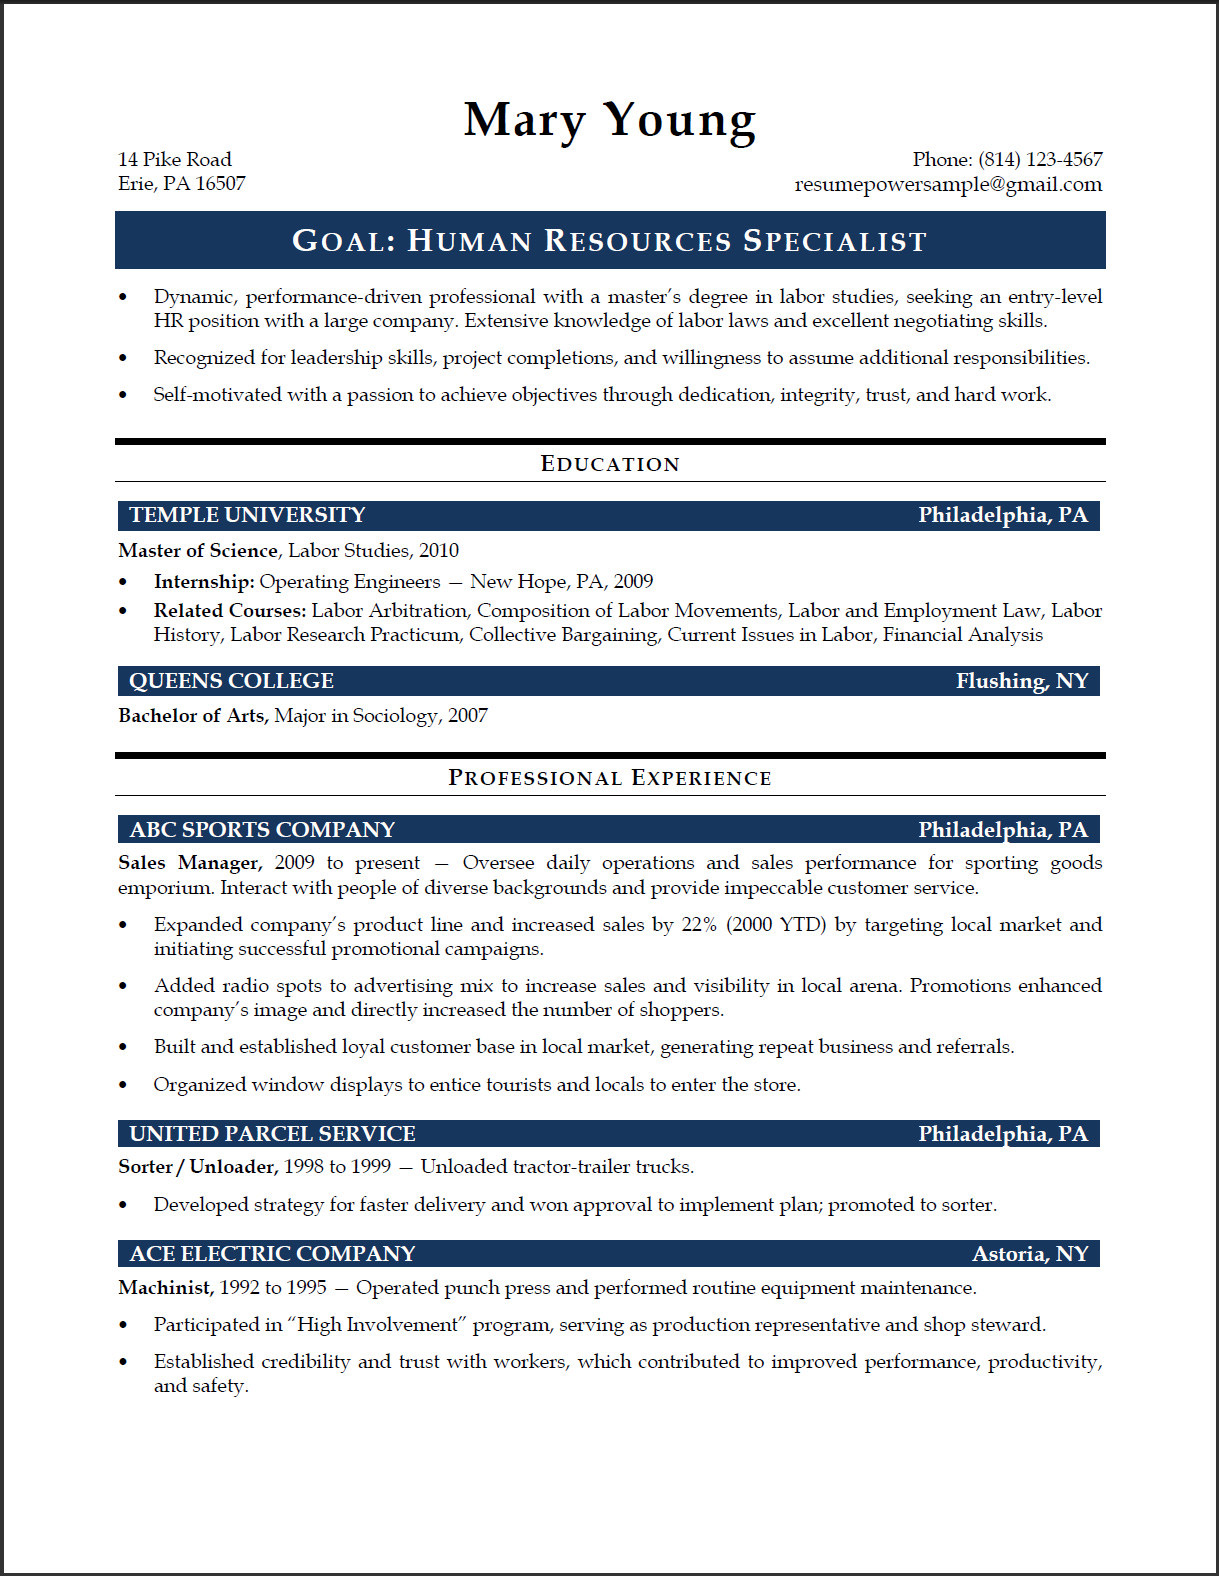 hr resume examples - Human Resource Resume Samples